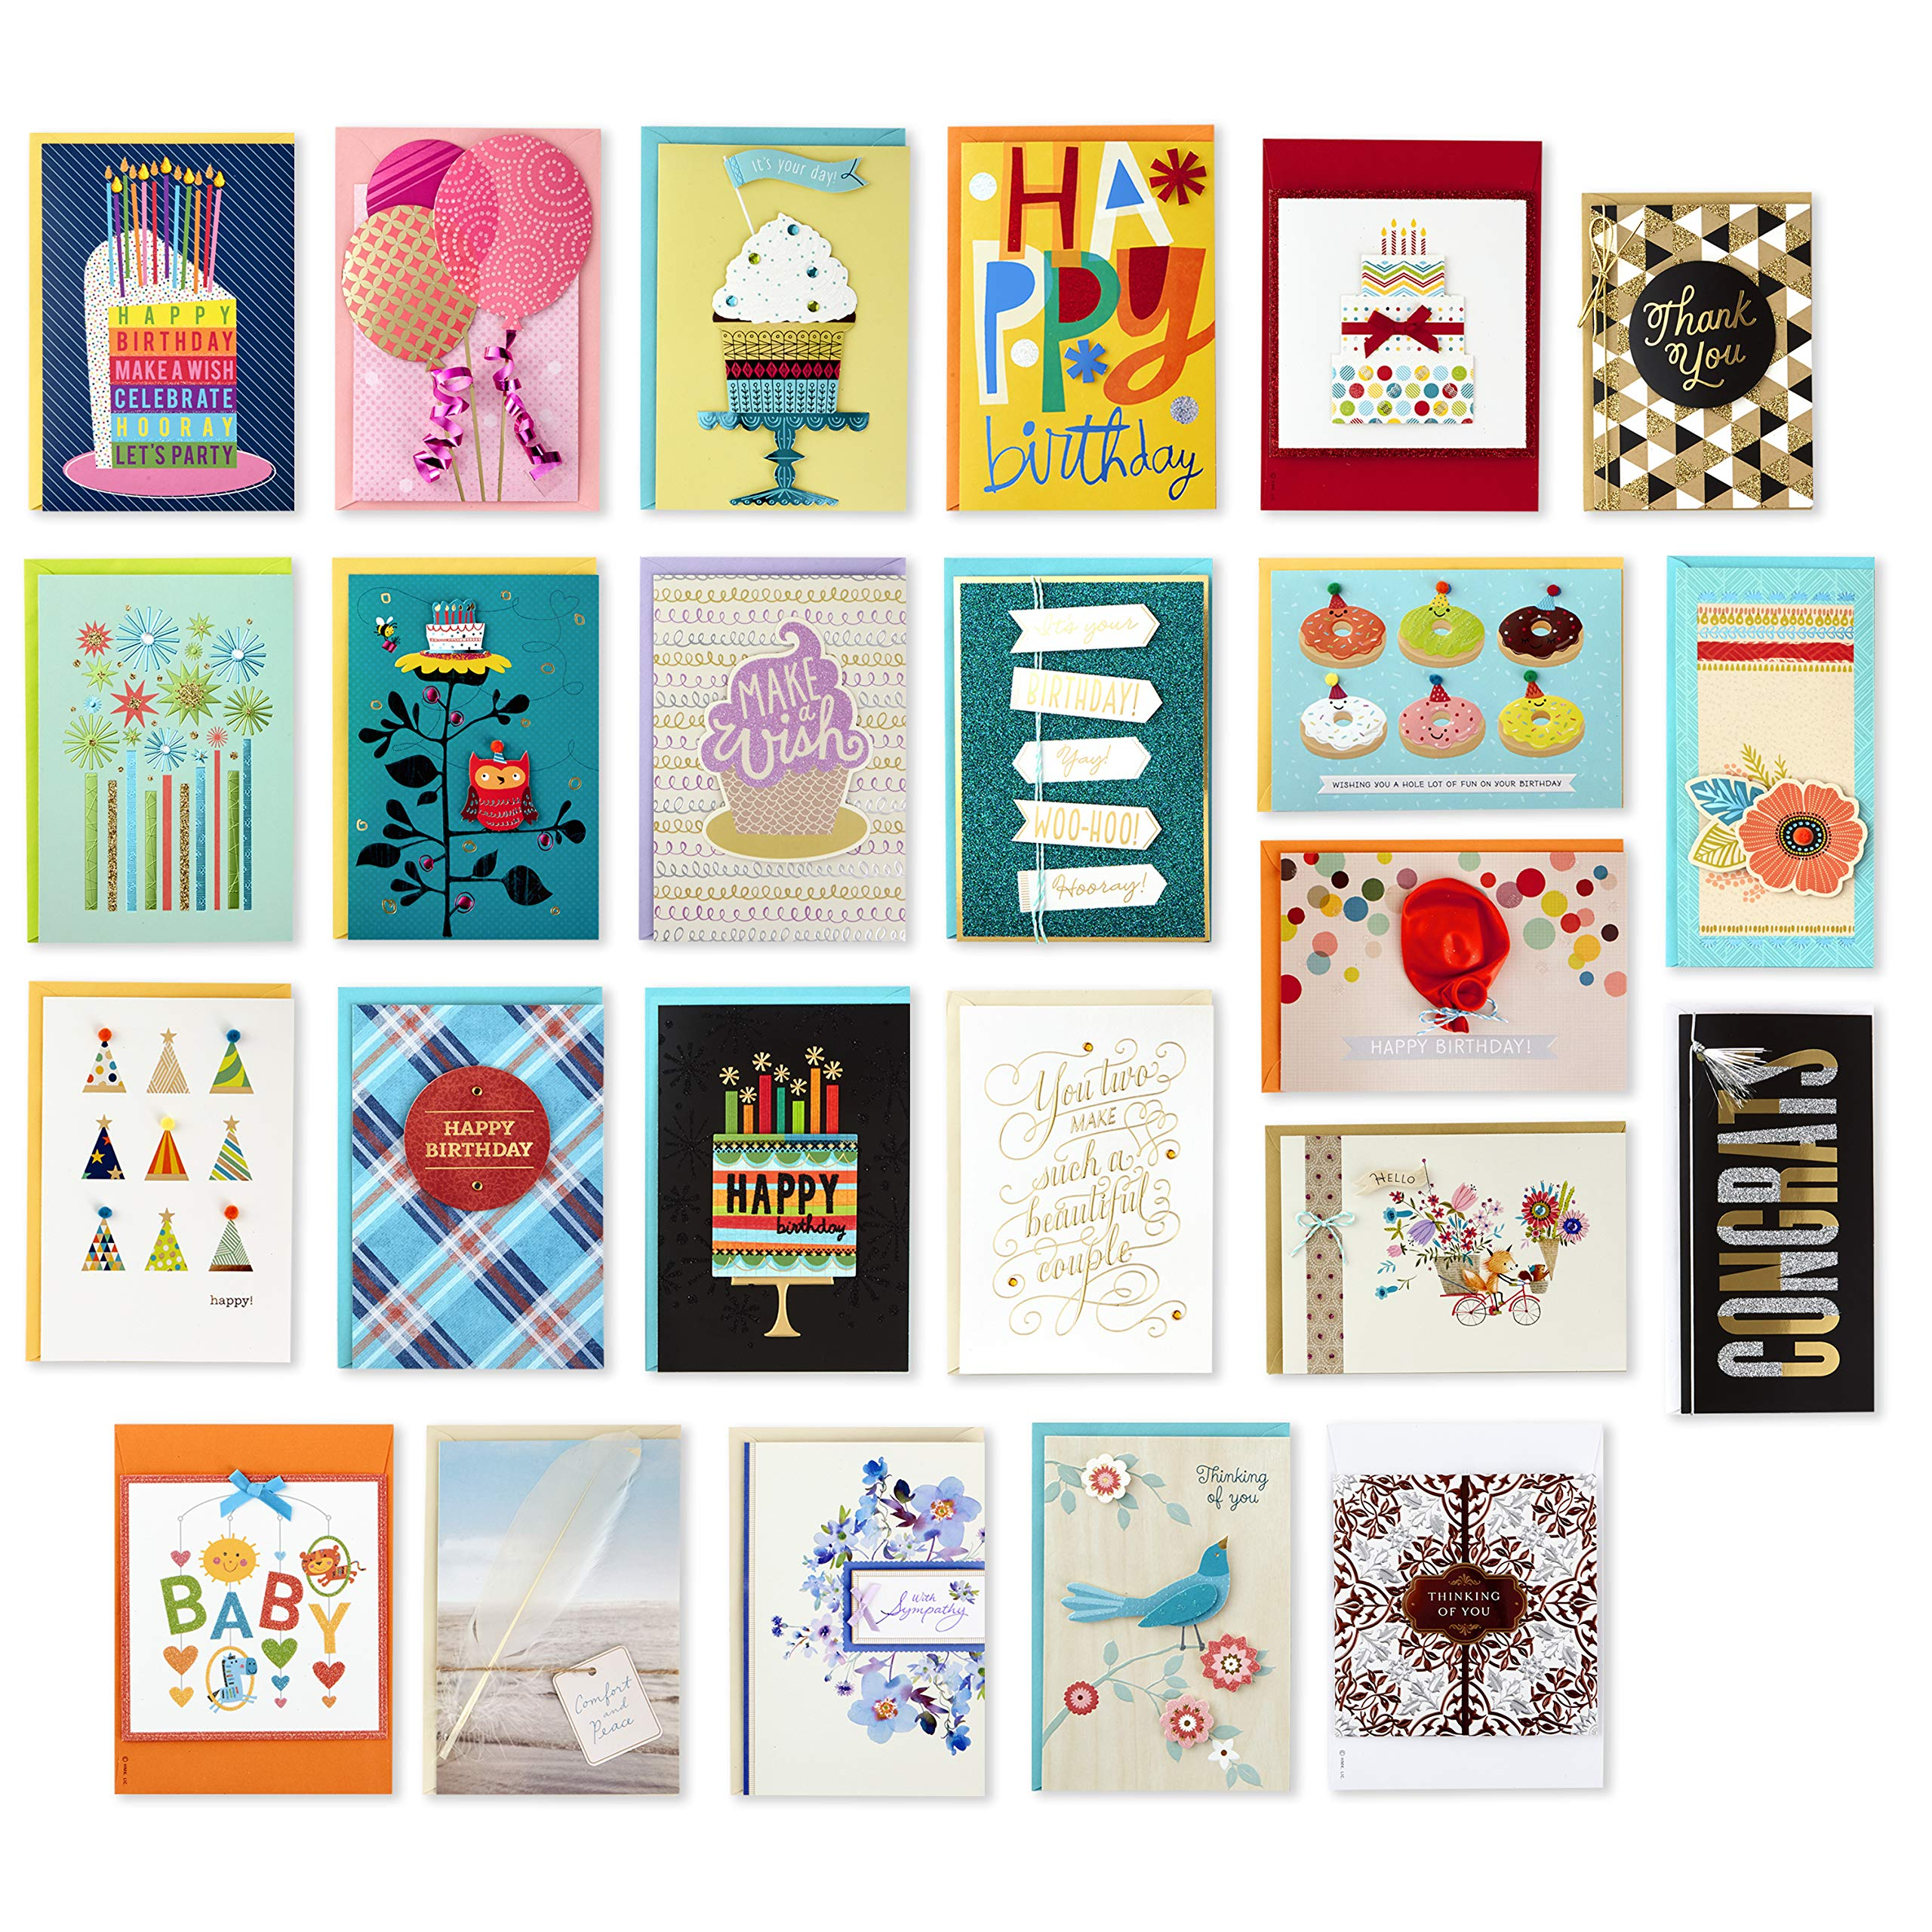 Hallmark Pack of 24 Handmade Assorted Boxed Greeting Cards, Modern Floral-Birthday Cards, Baby Shower Cards, Wedding Cards, Sympathy Cards, Thinking of You Cards, Thank You Cards by Hallmark